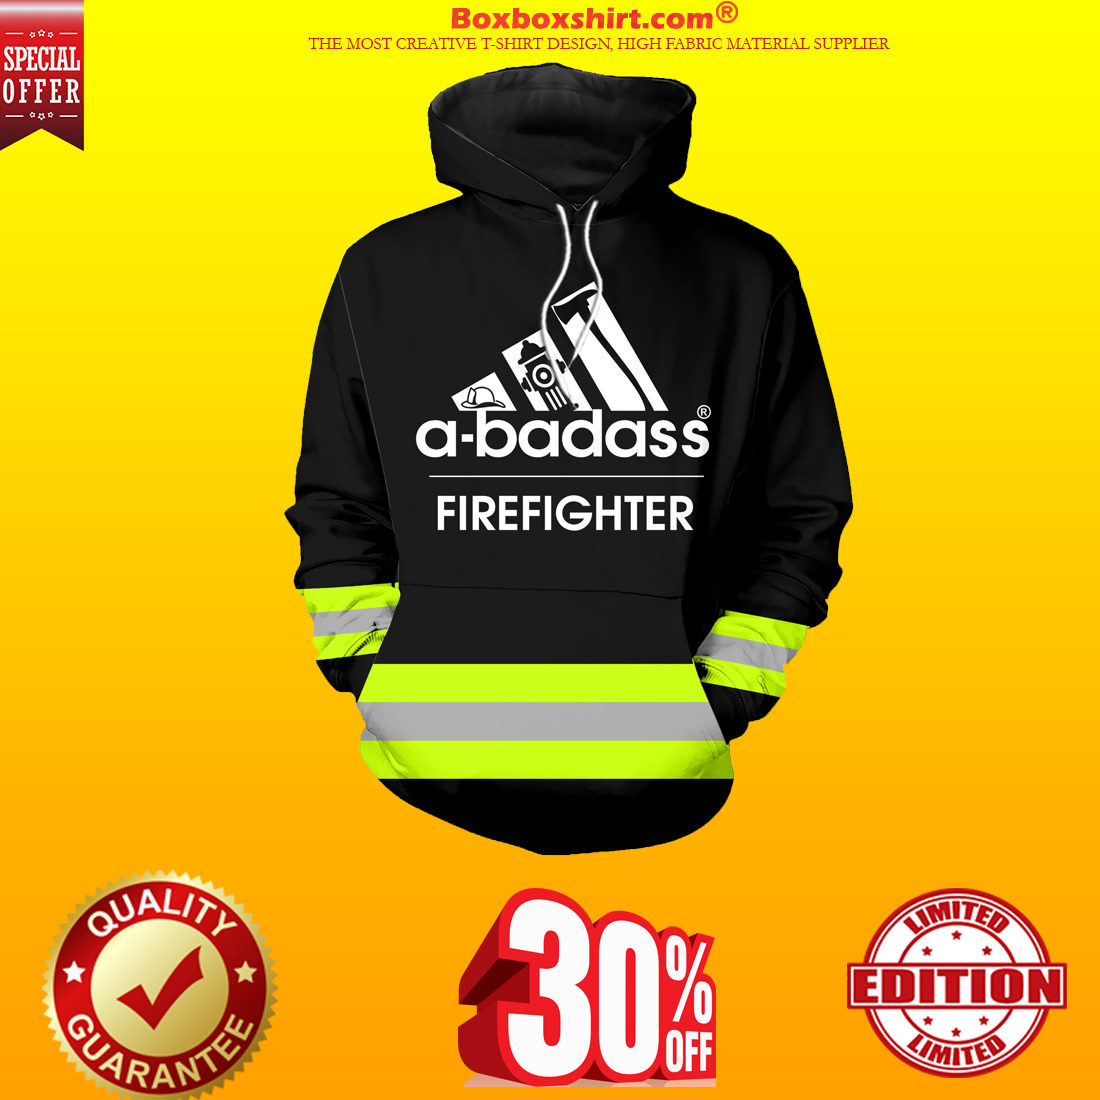 Under Armour firefighter hoodie and shirt green line 3d